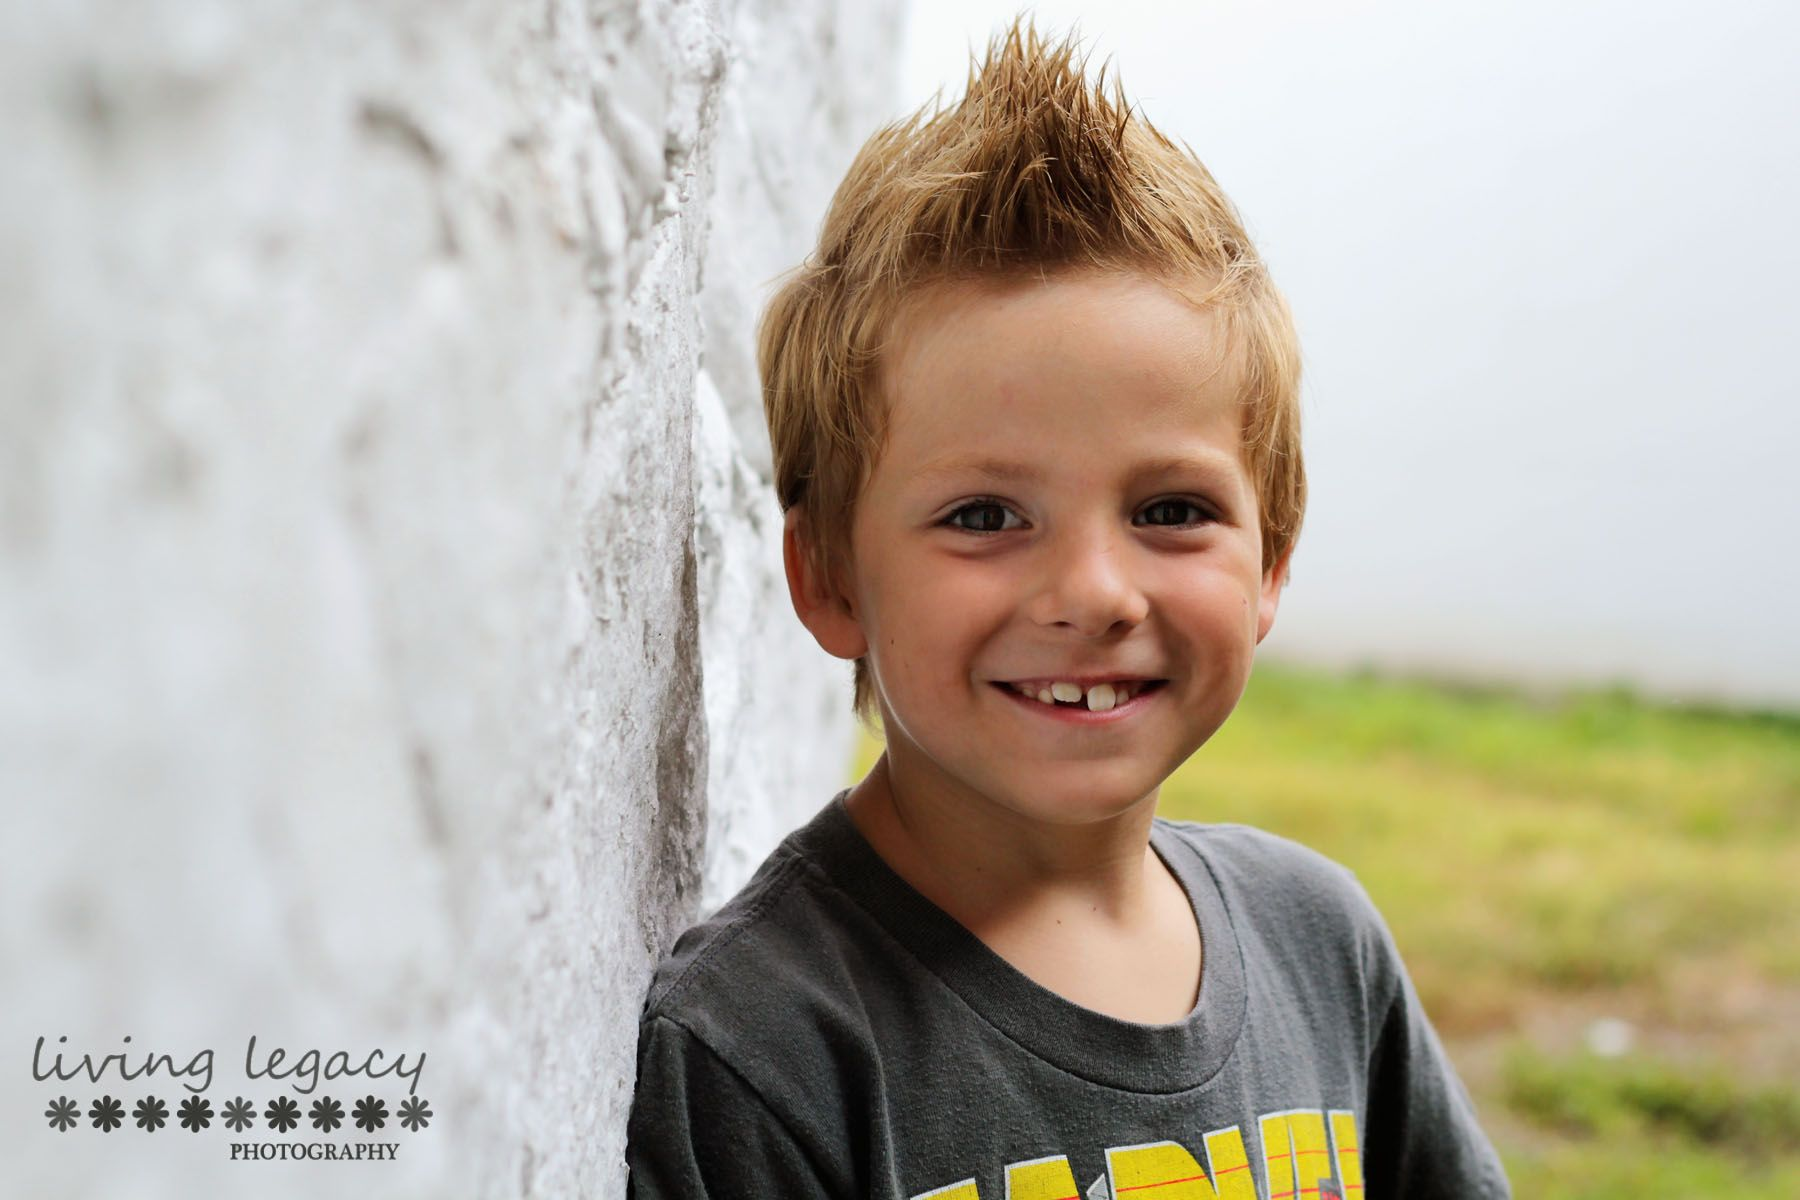 Living Legacy Photography 6 year old boy session outdoor natural light portraits